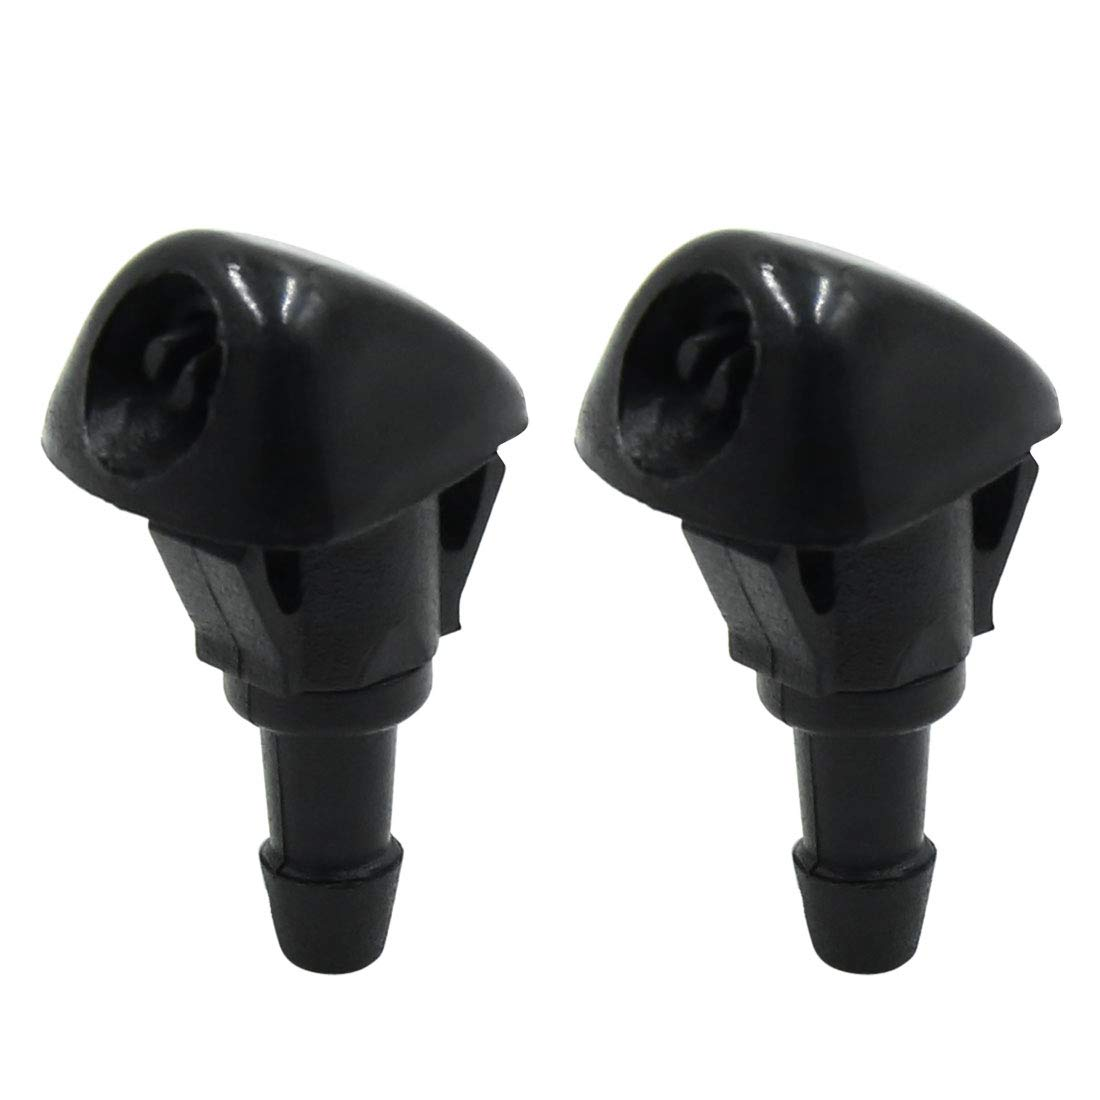 X AUTOHAUX 2pcs Black ABS Front Windshield Washer Water Cleaning Jet Nozzles